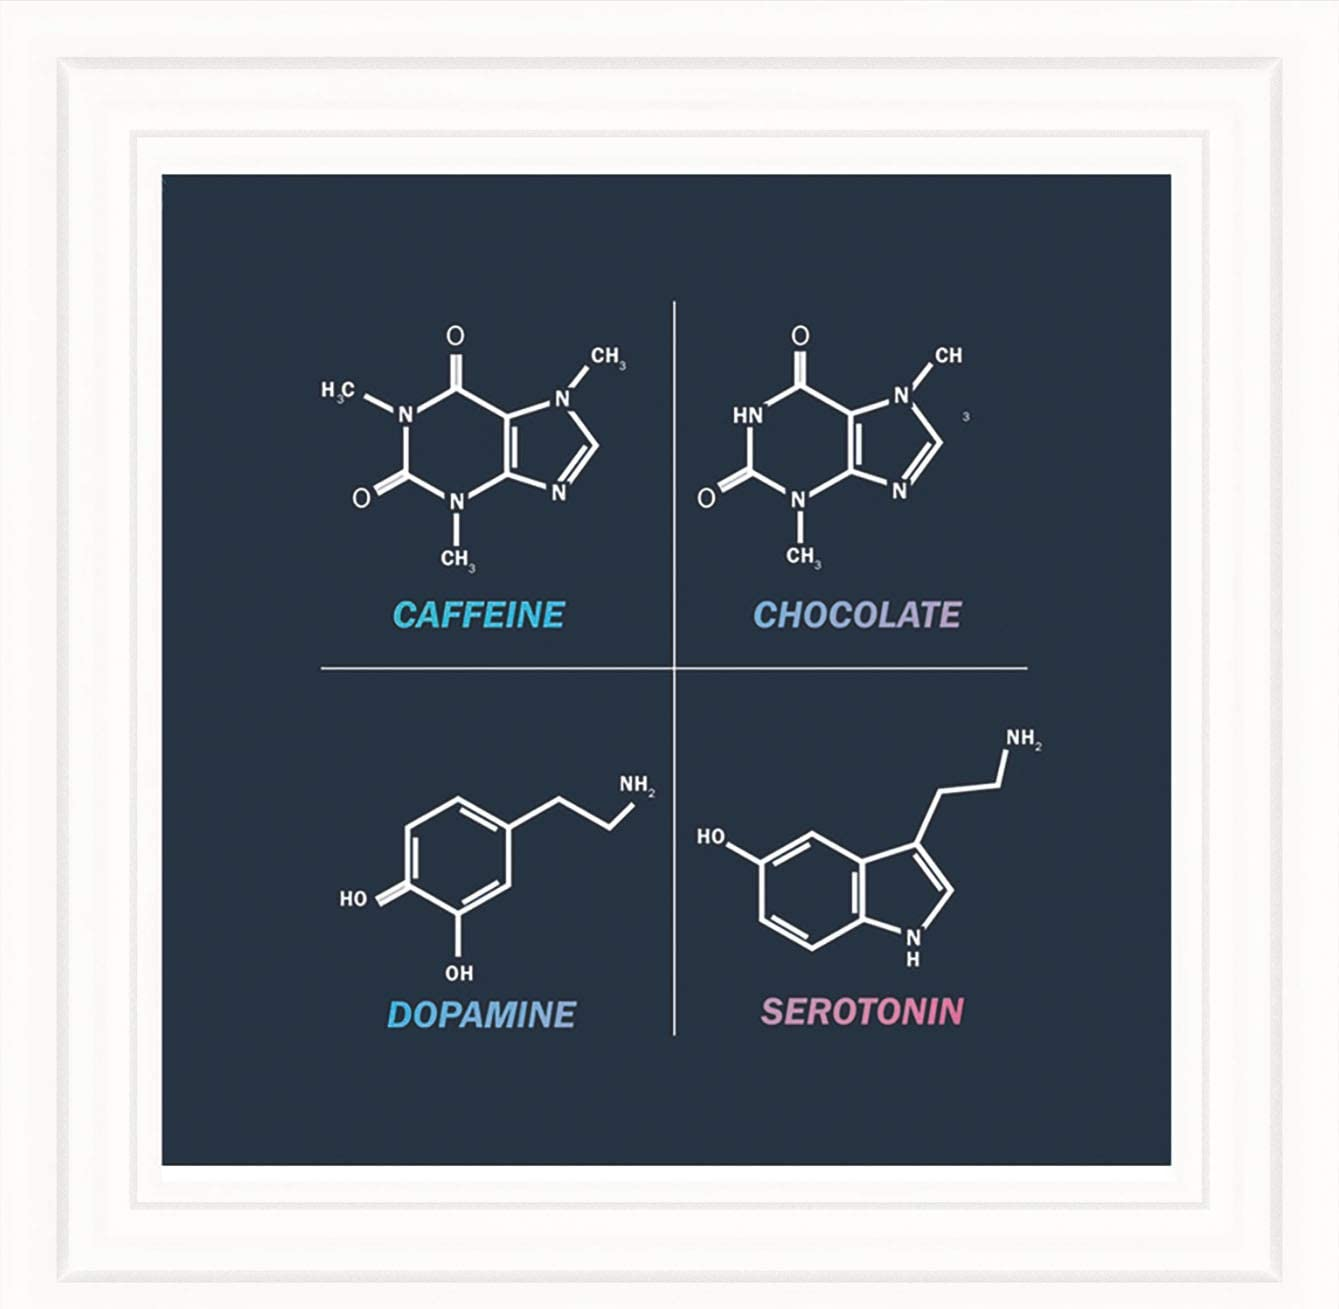 Chemistry Gifts | 7X7 Tile Artwork Special for Chemists for Chemistry Lovers | Ideal for Home, Office or Classroom Decoration